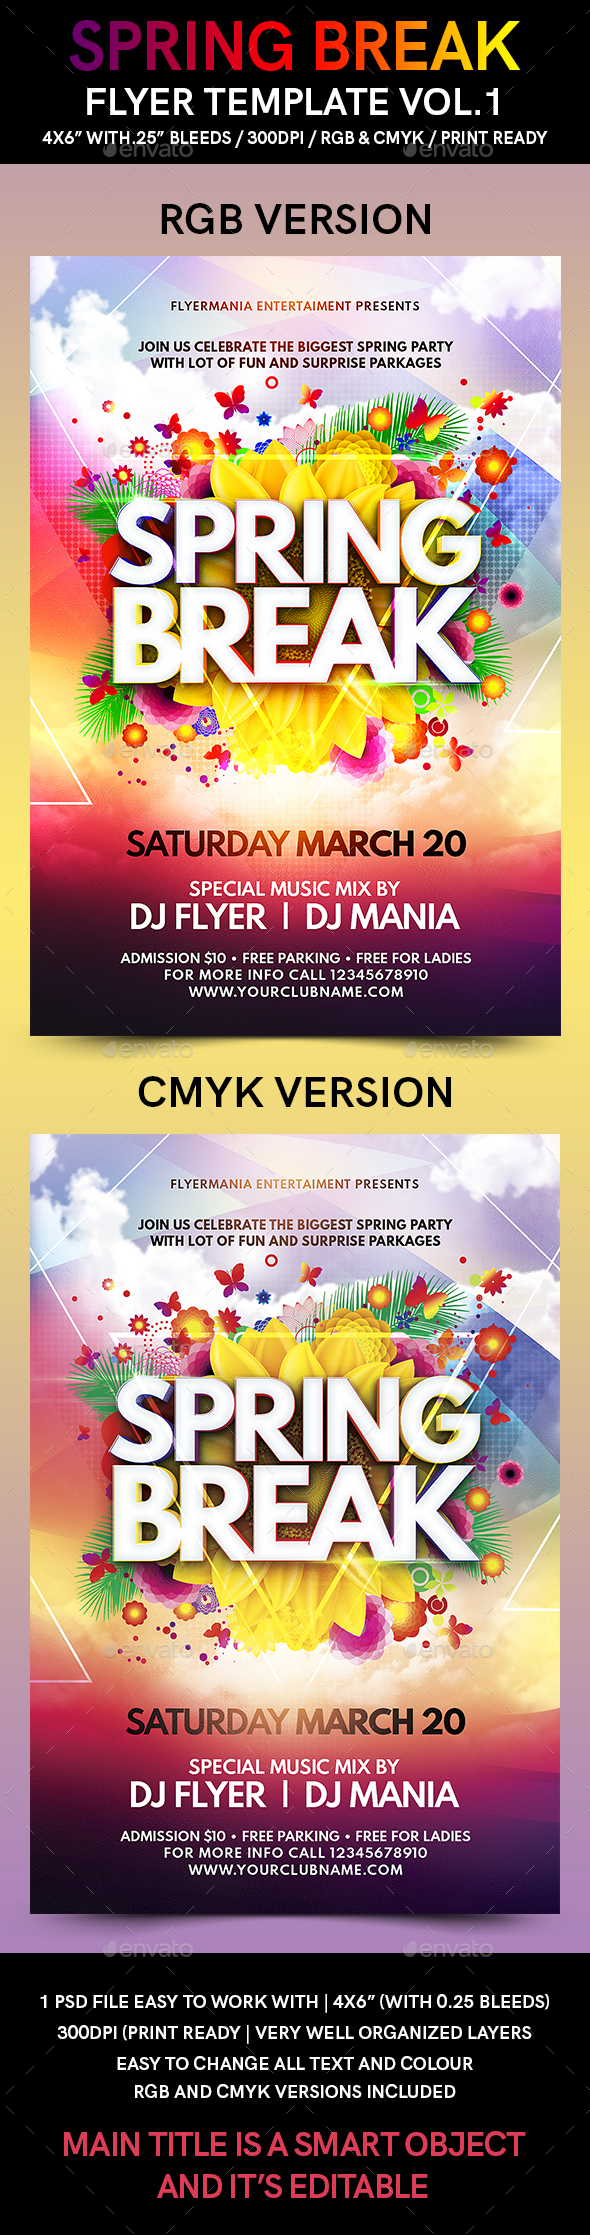 Spring Break Flyer Template Vol.1 - Flyers Print Templates